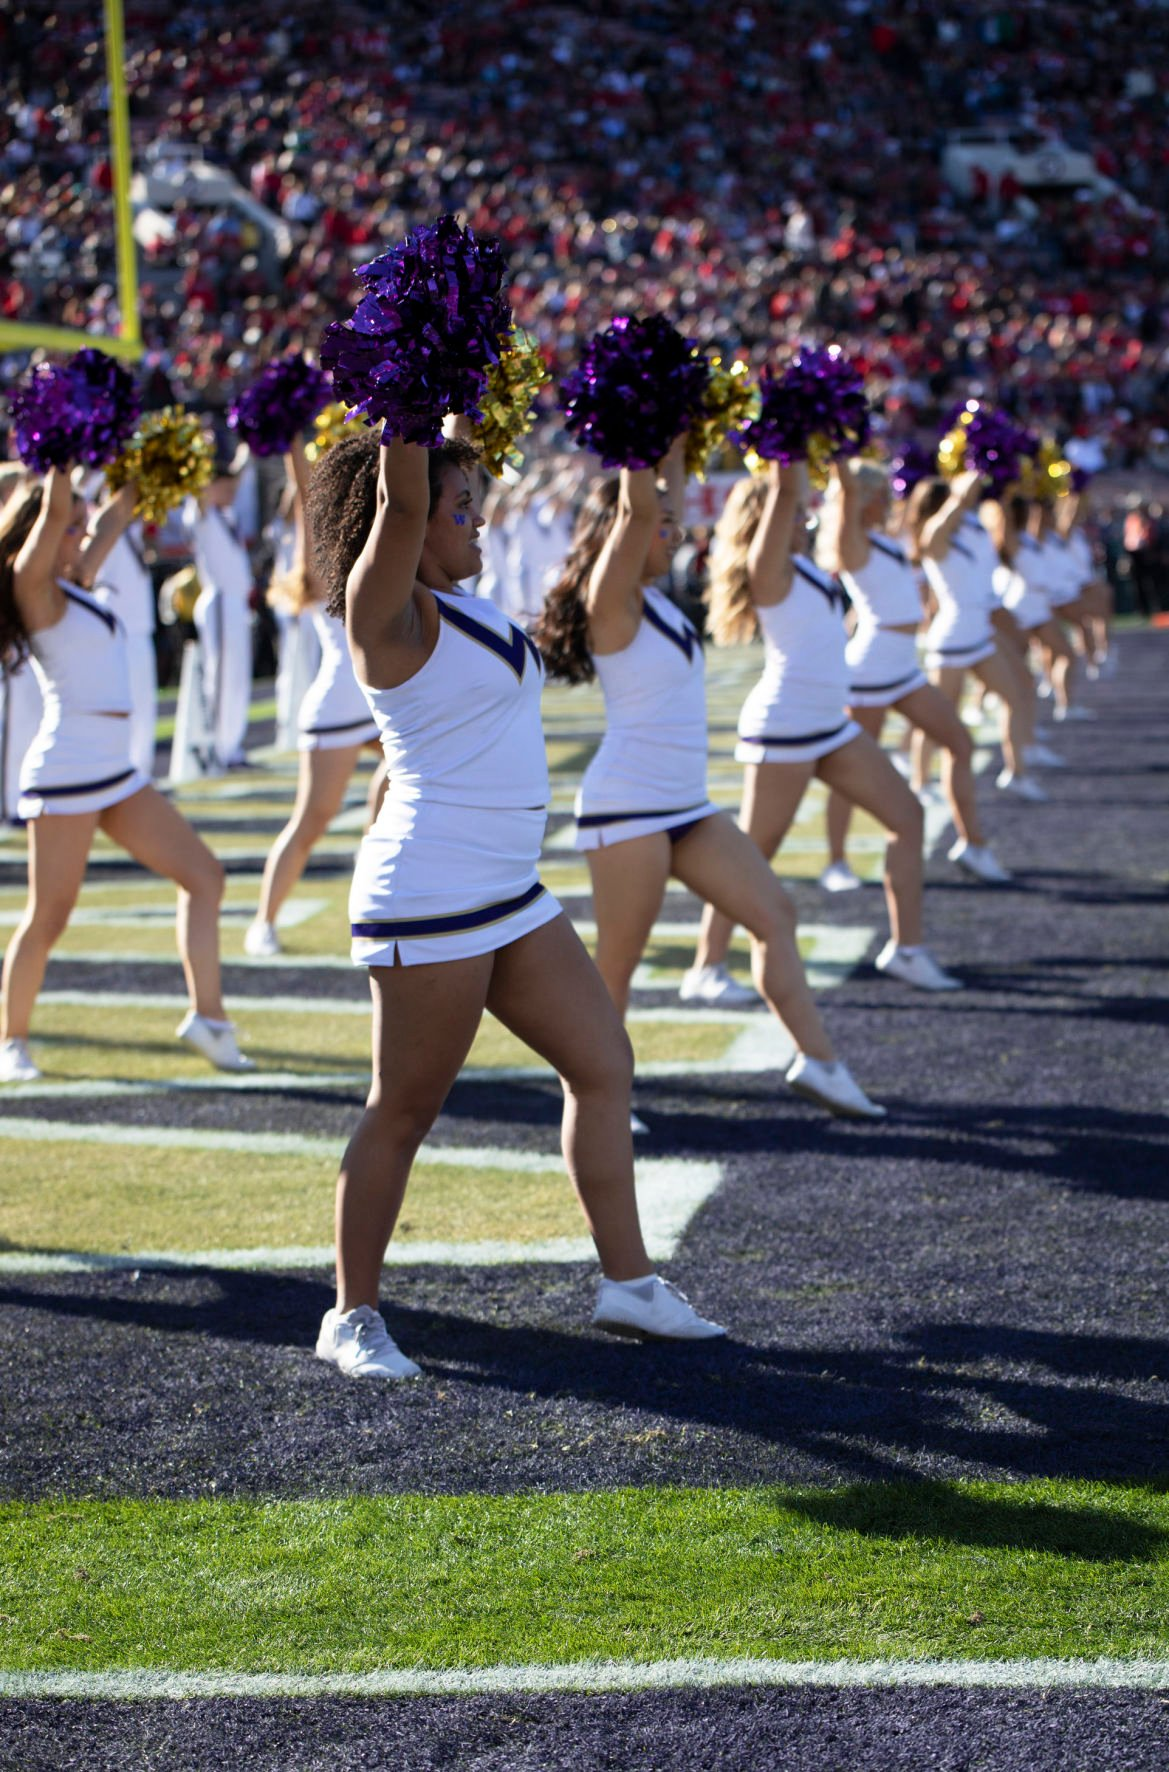 'It's like engraved in my brain': What goes into being a UW cheerleader